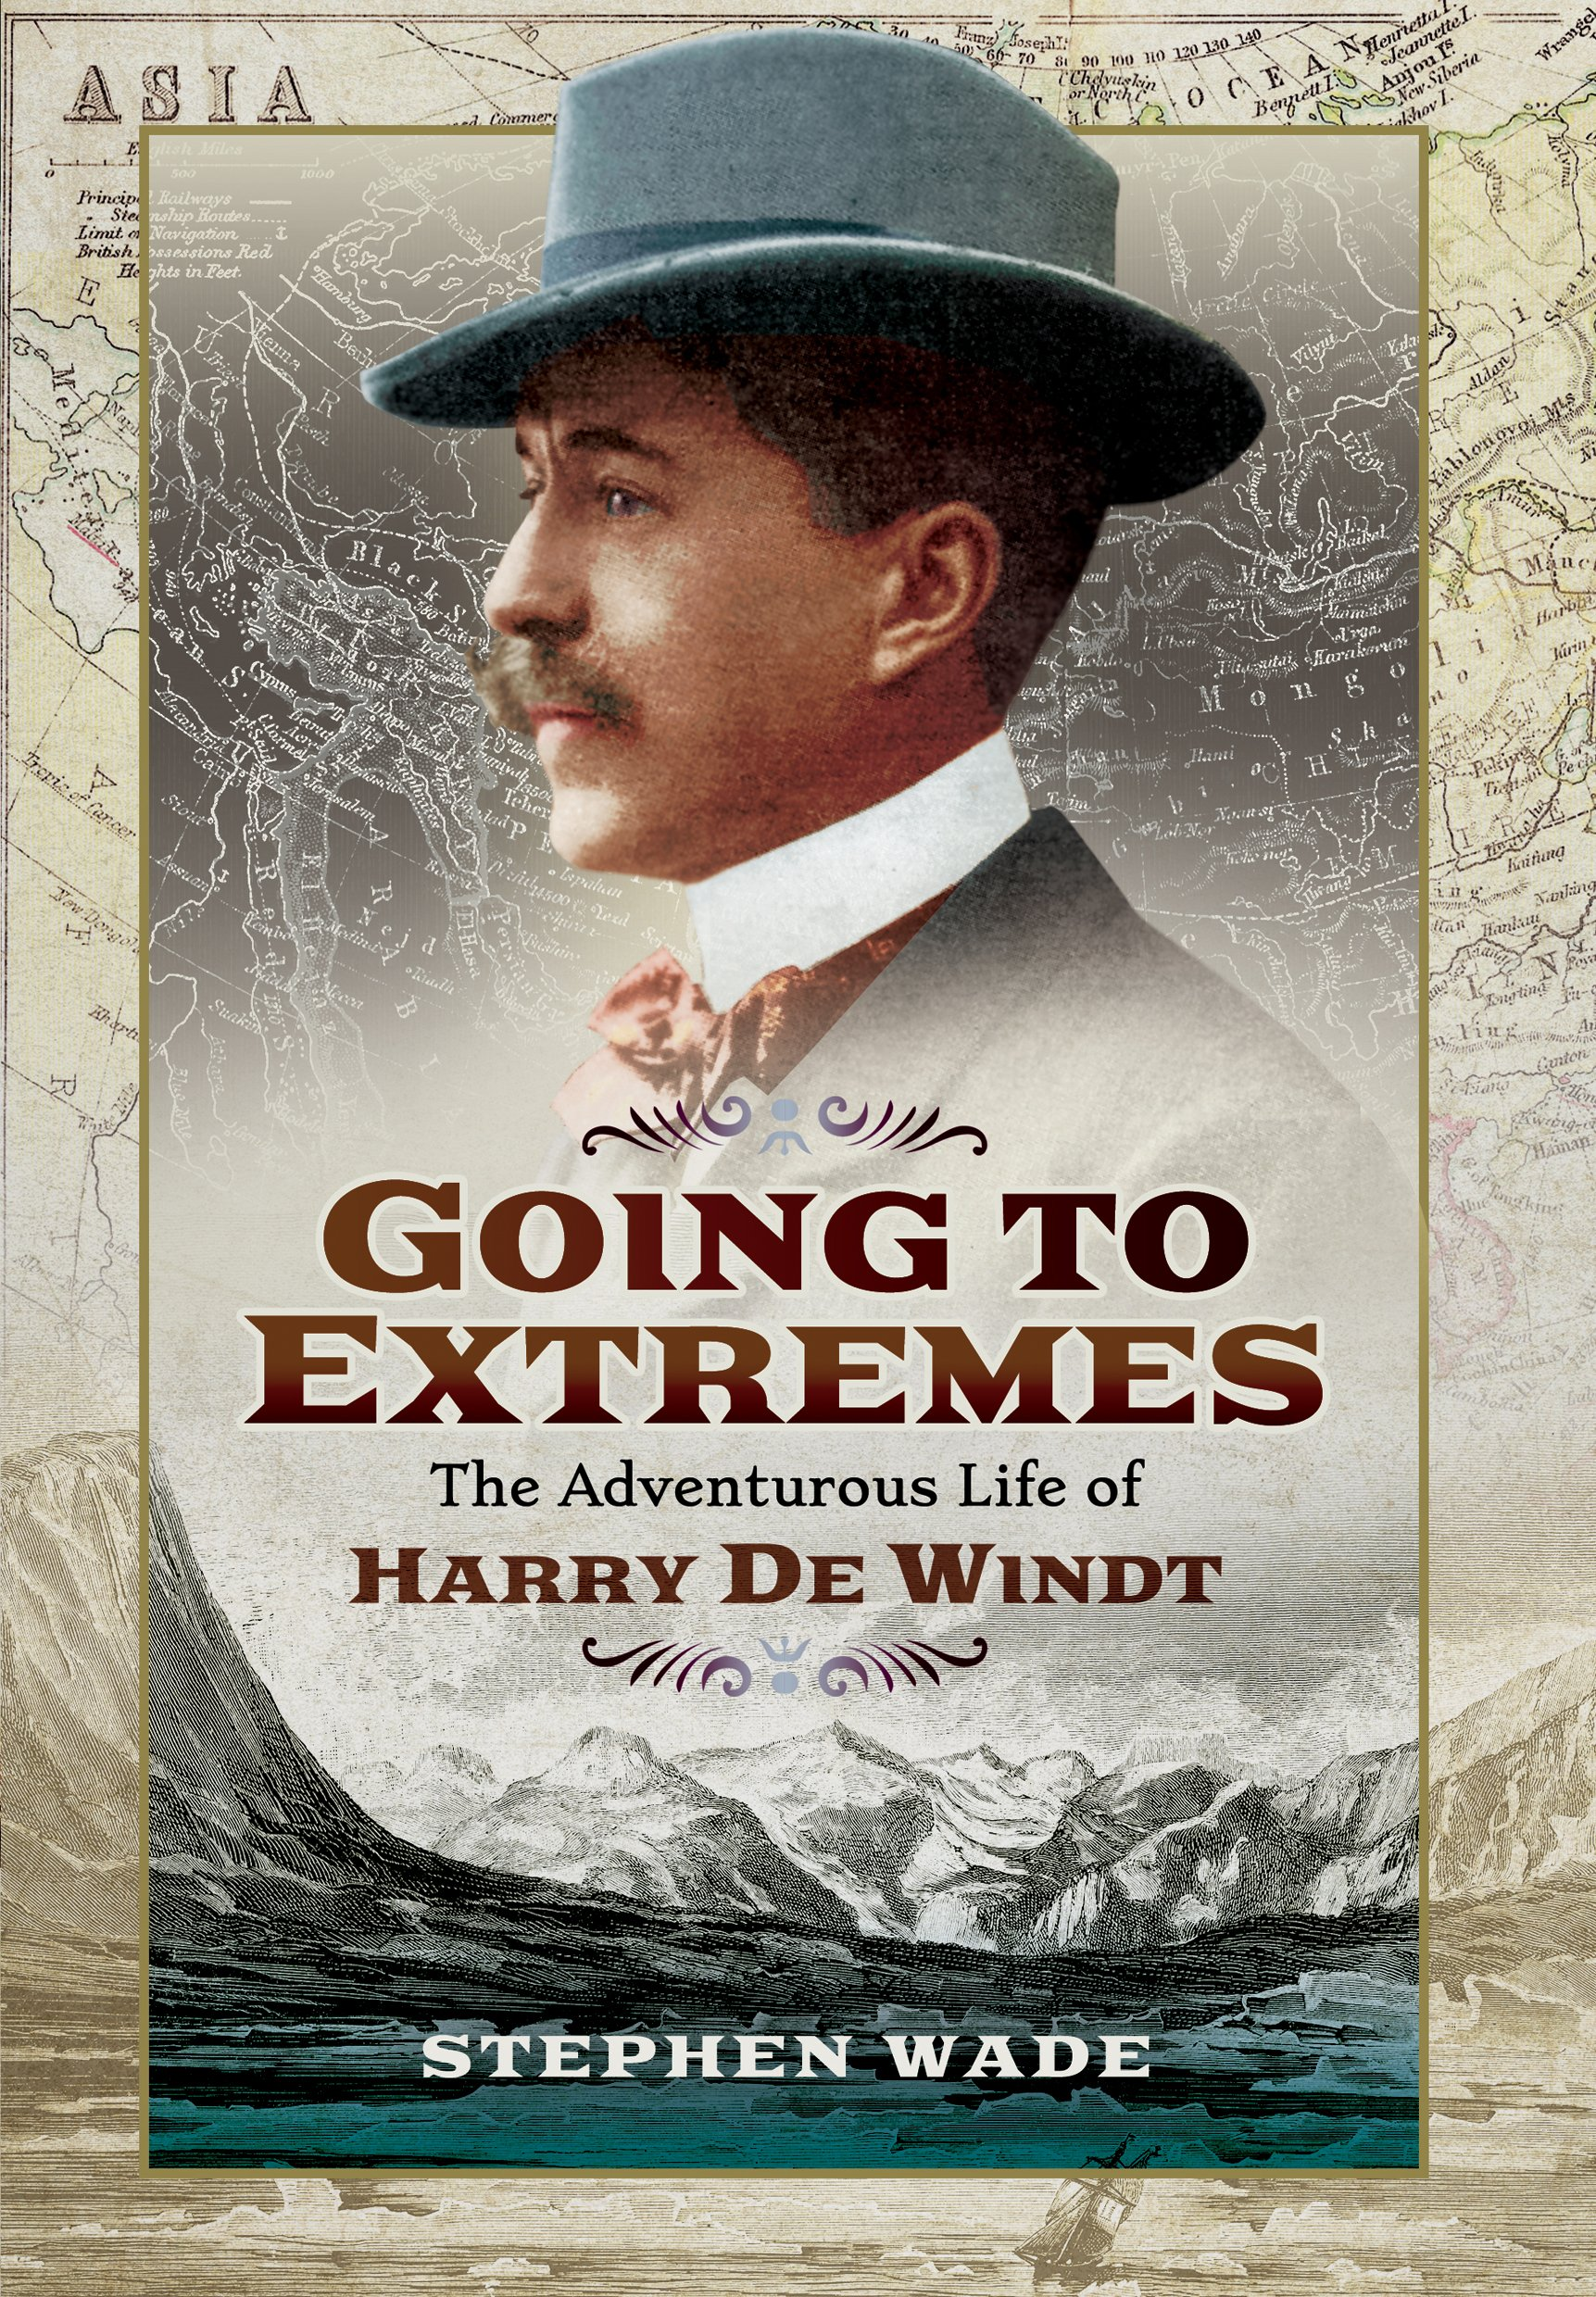 Going to Extremes: The Adventurous Life of Harry de Windt